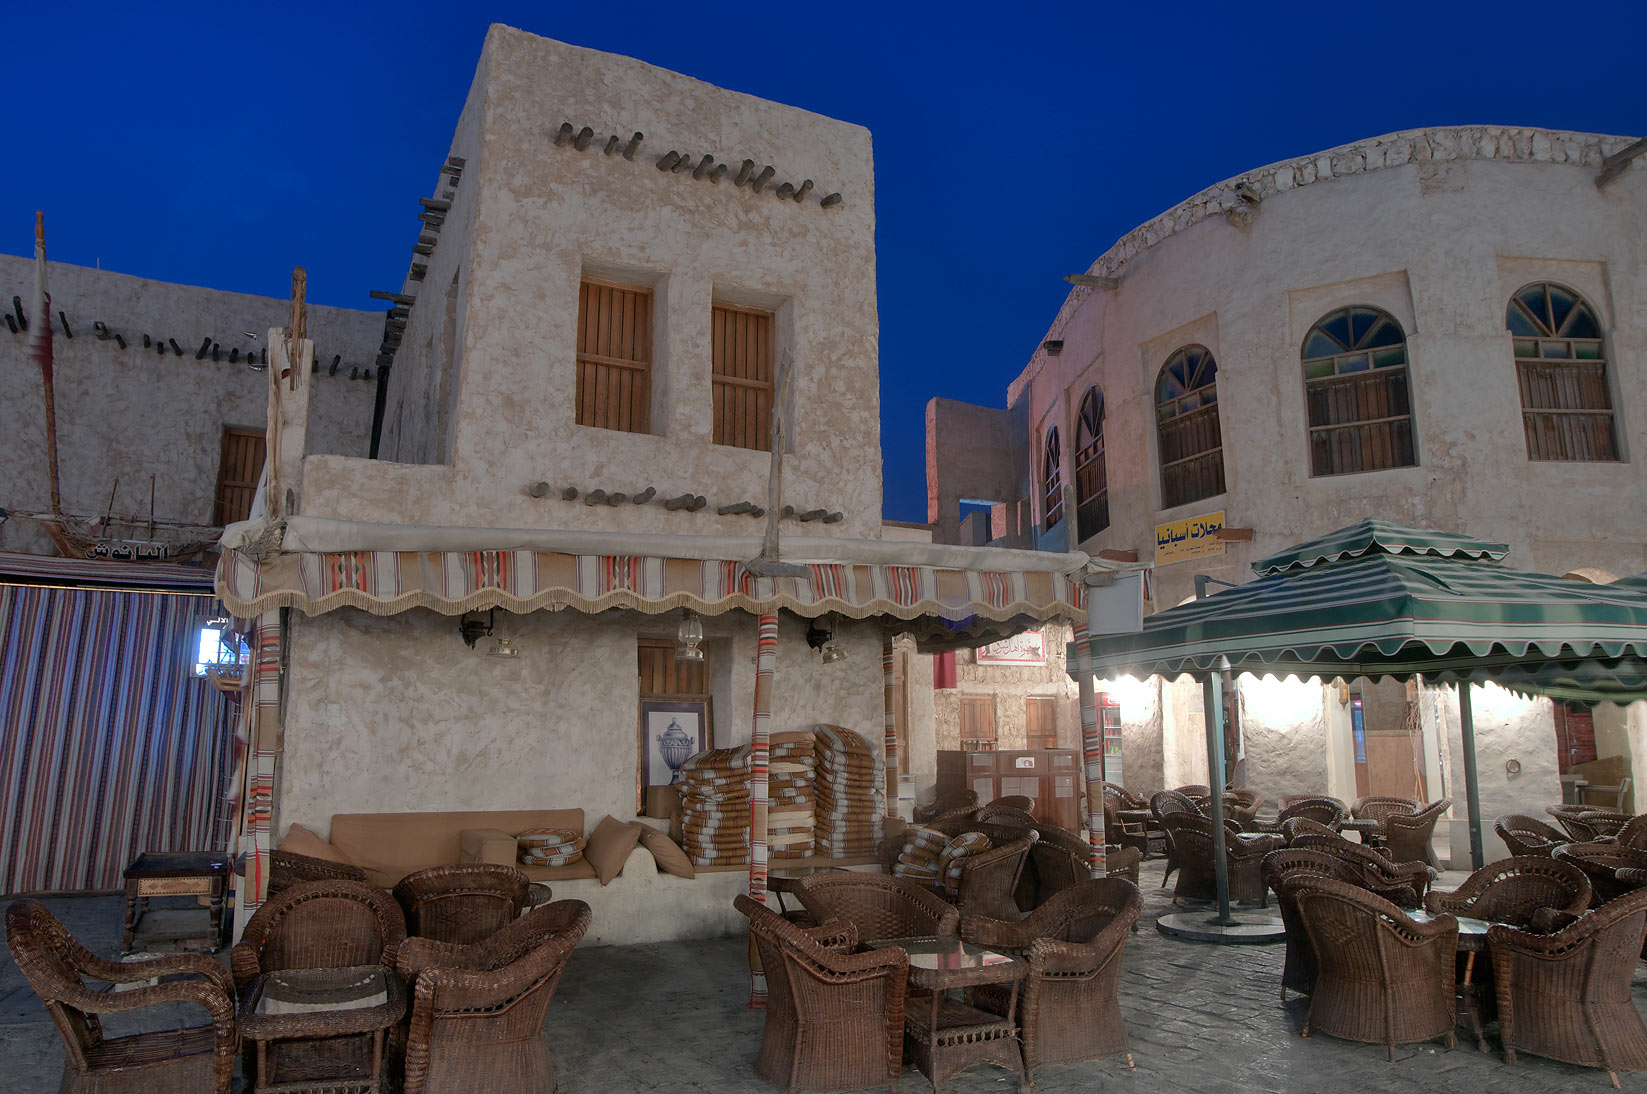 Cafe in Souq Waqif (Old Market) at morning. Doha, Qatar